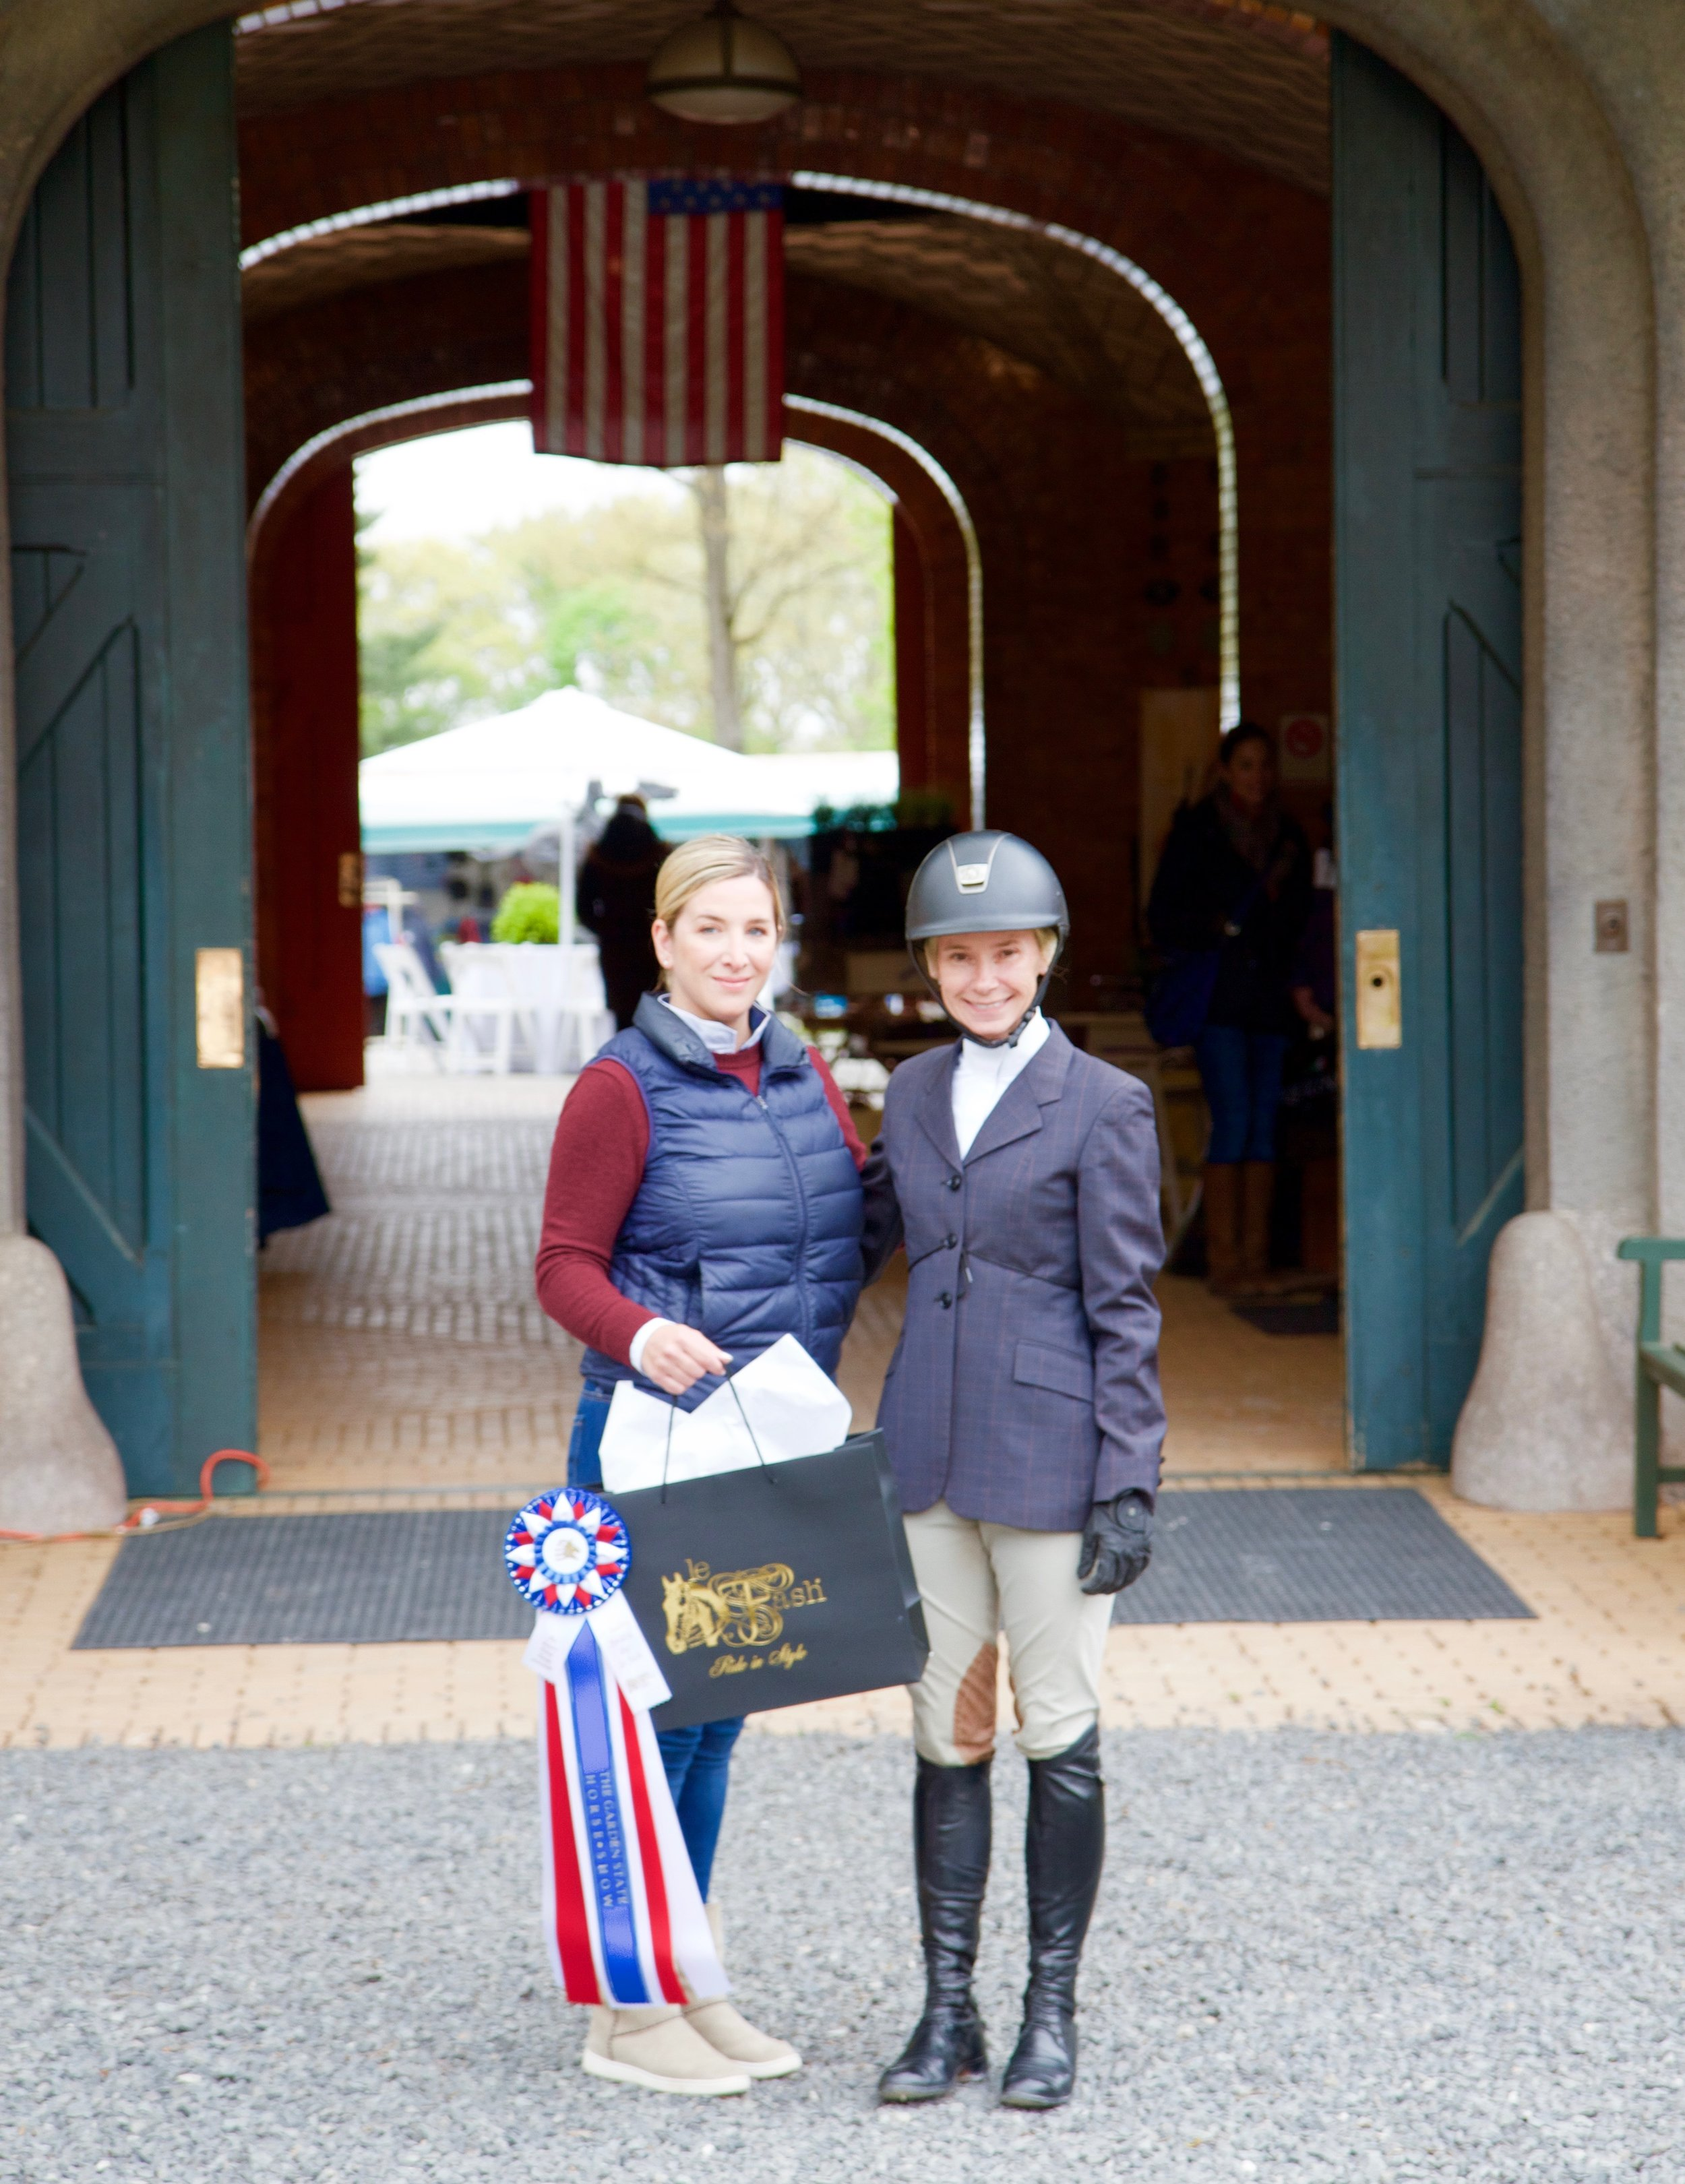 Style of Riding award winner Valerie Primavera with Le Fash owner Arianna Vestino.